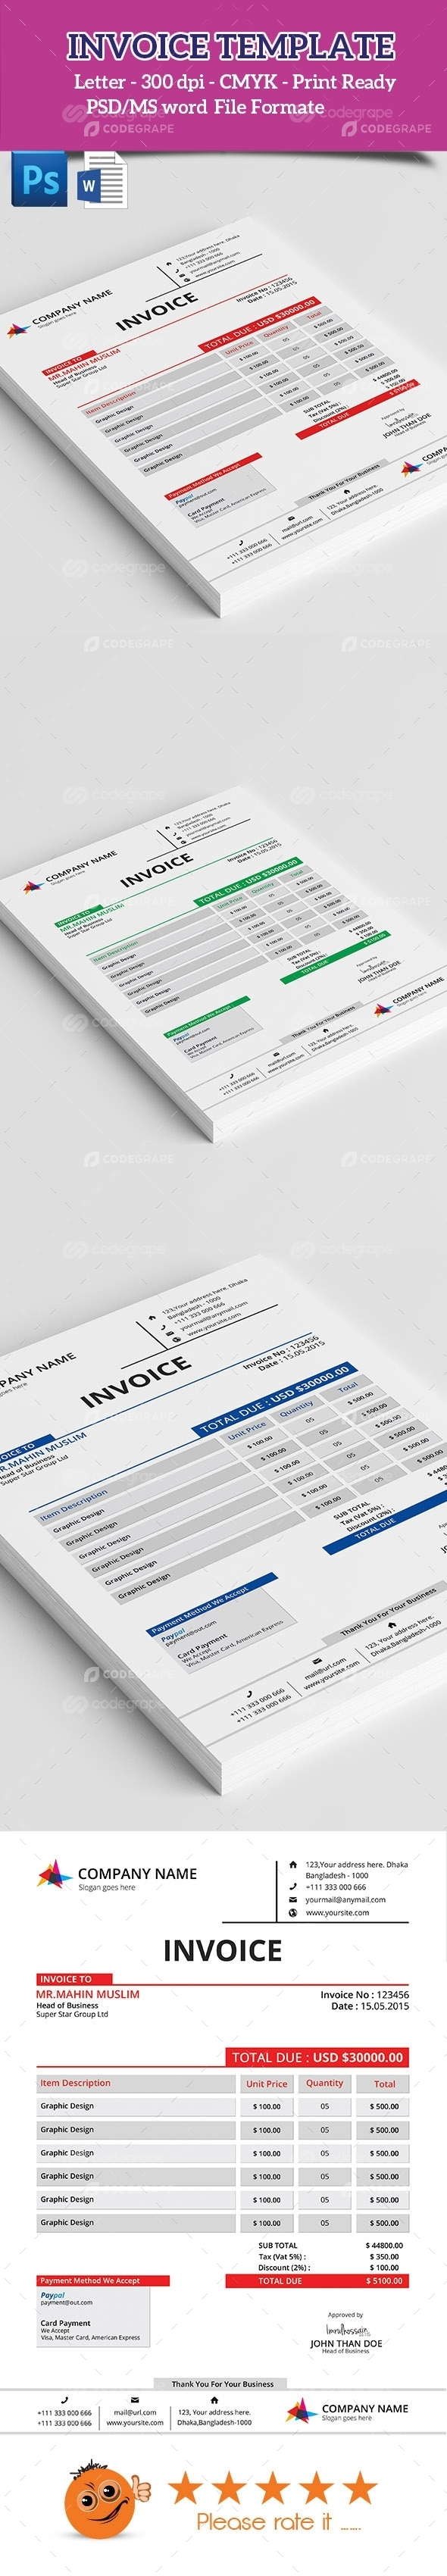 Clean Invoice MS word